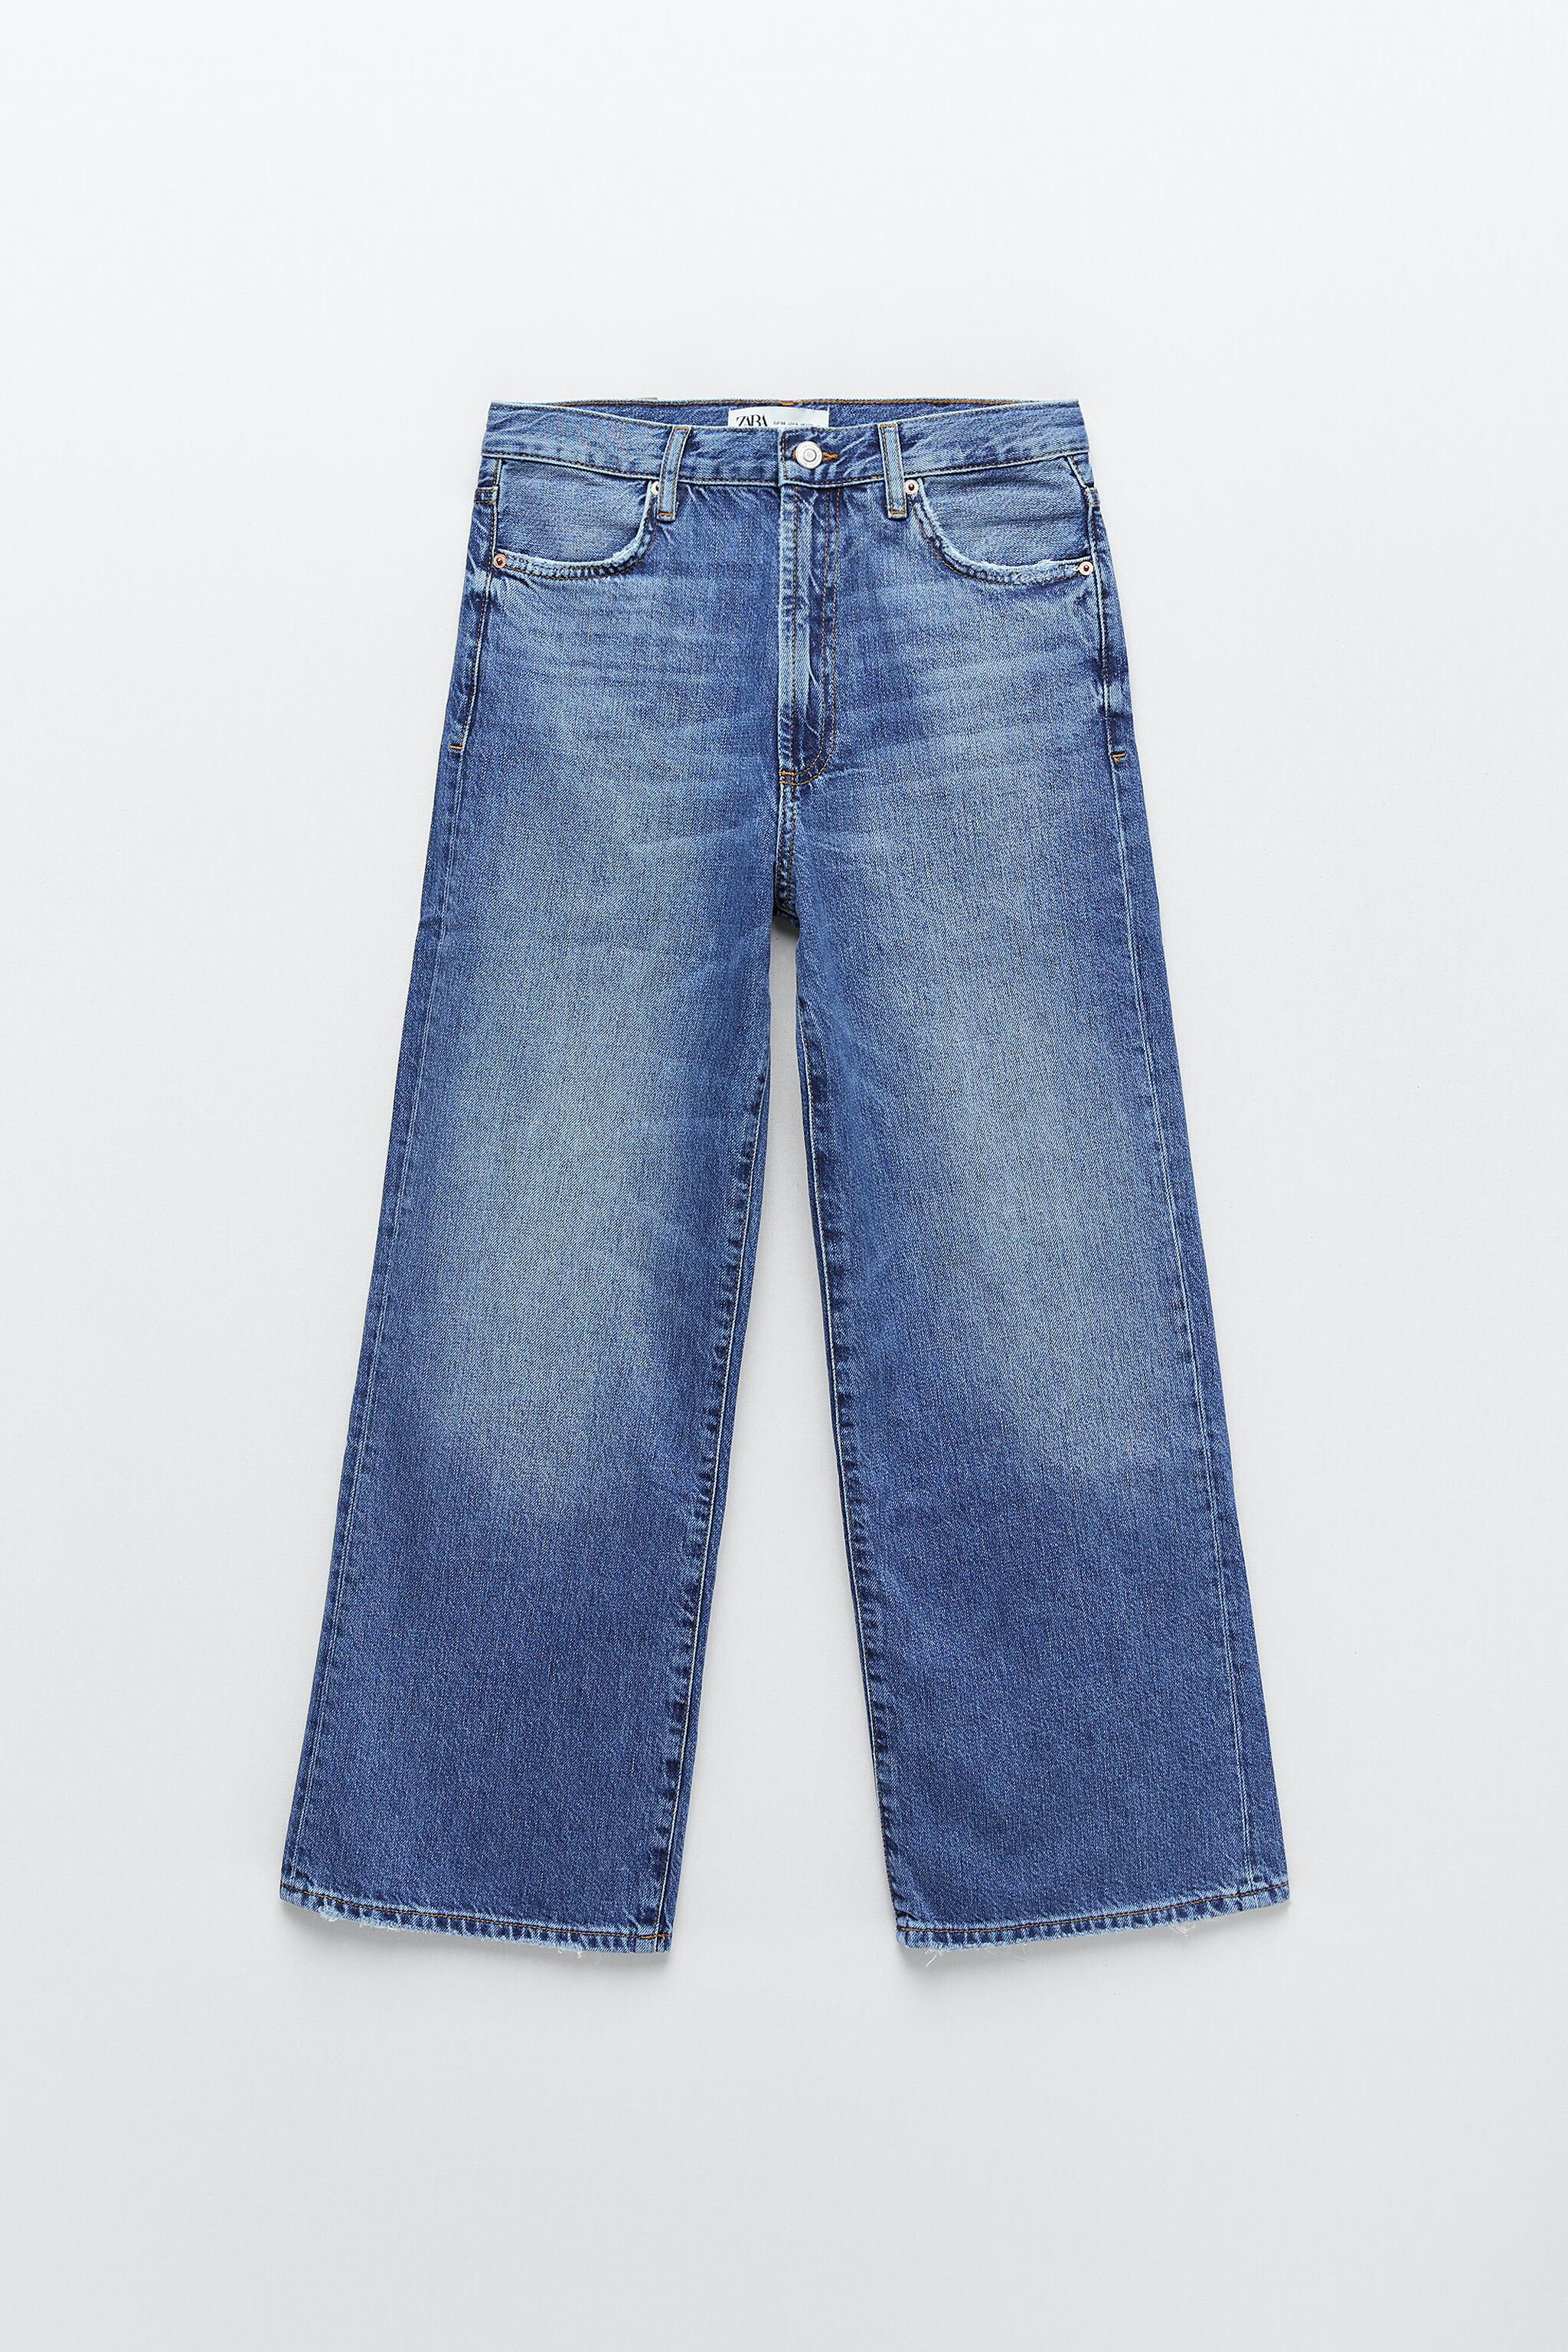 THE PAX CULOTTE ZW JEANS 7